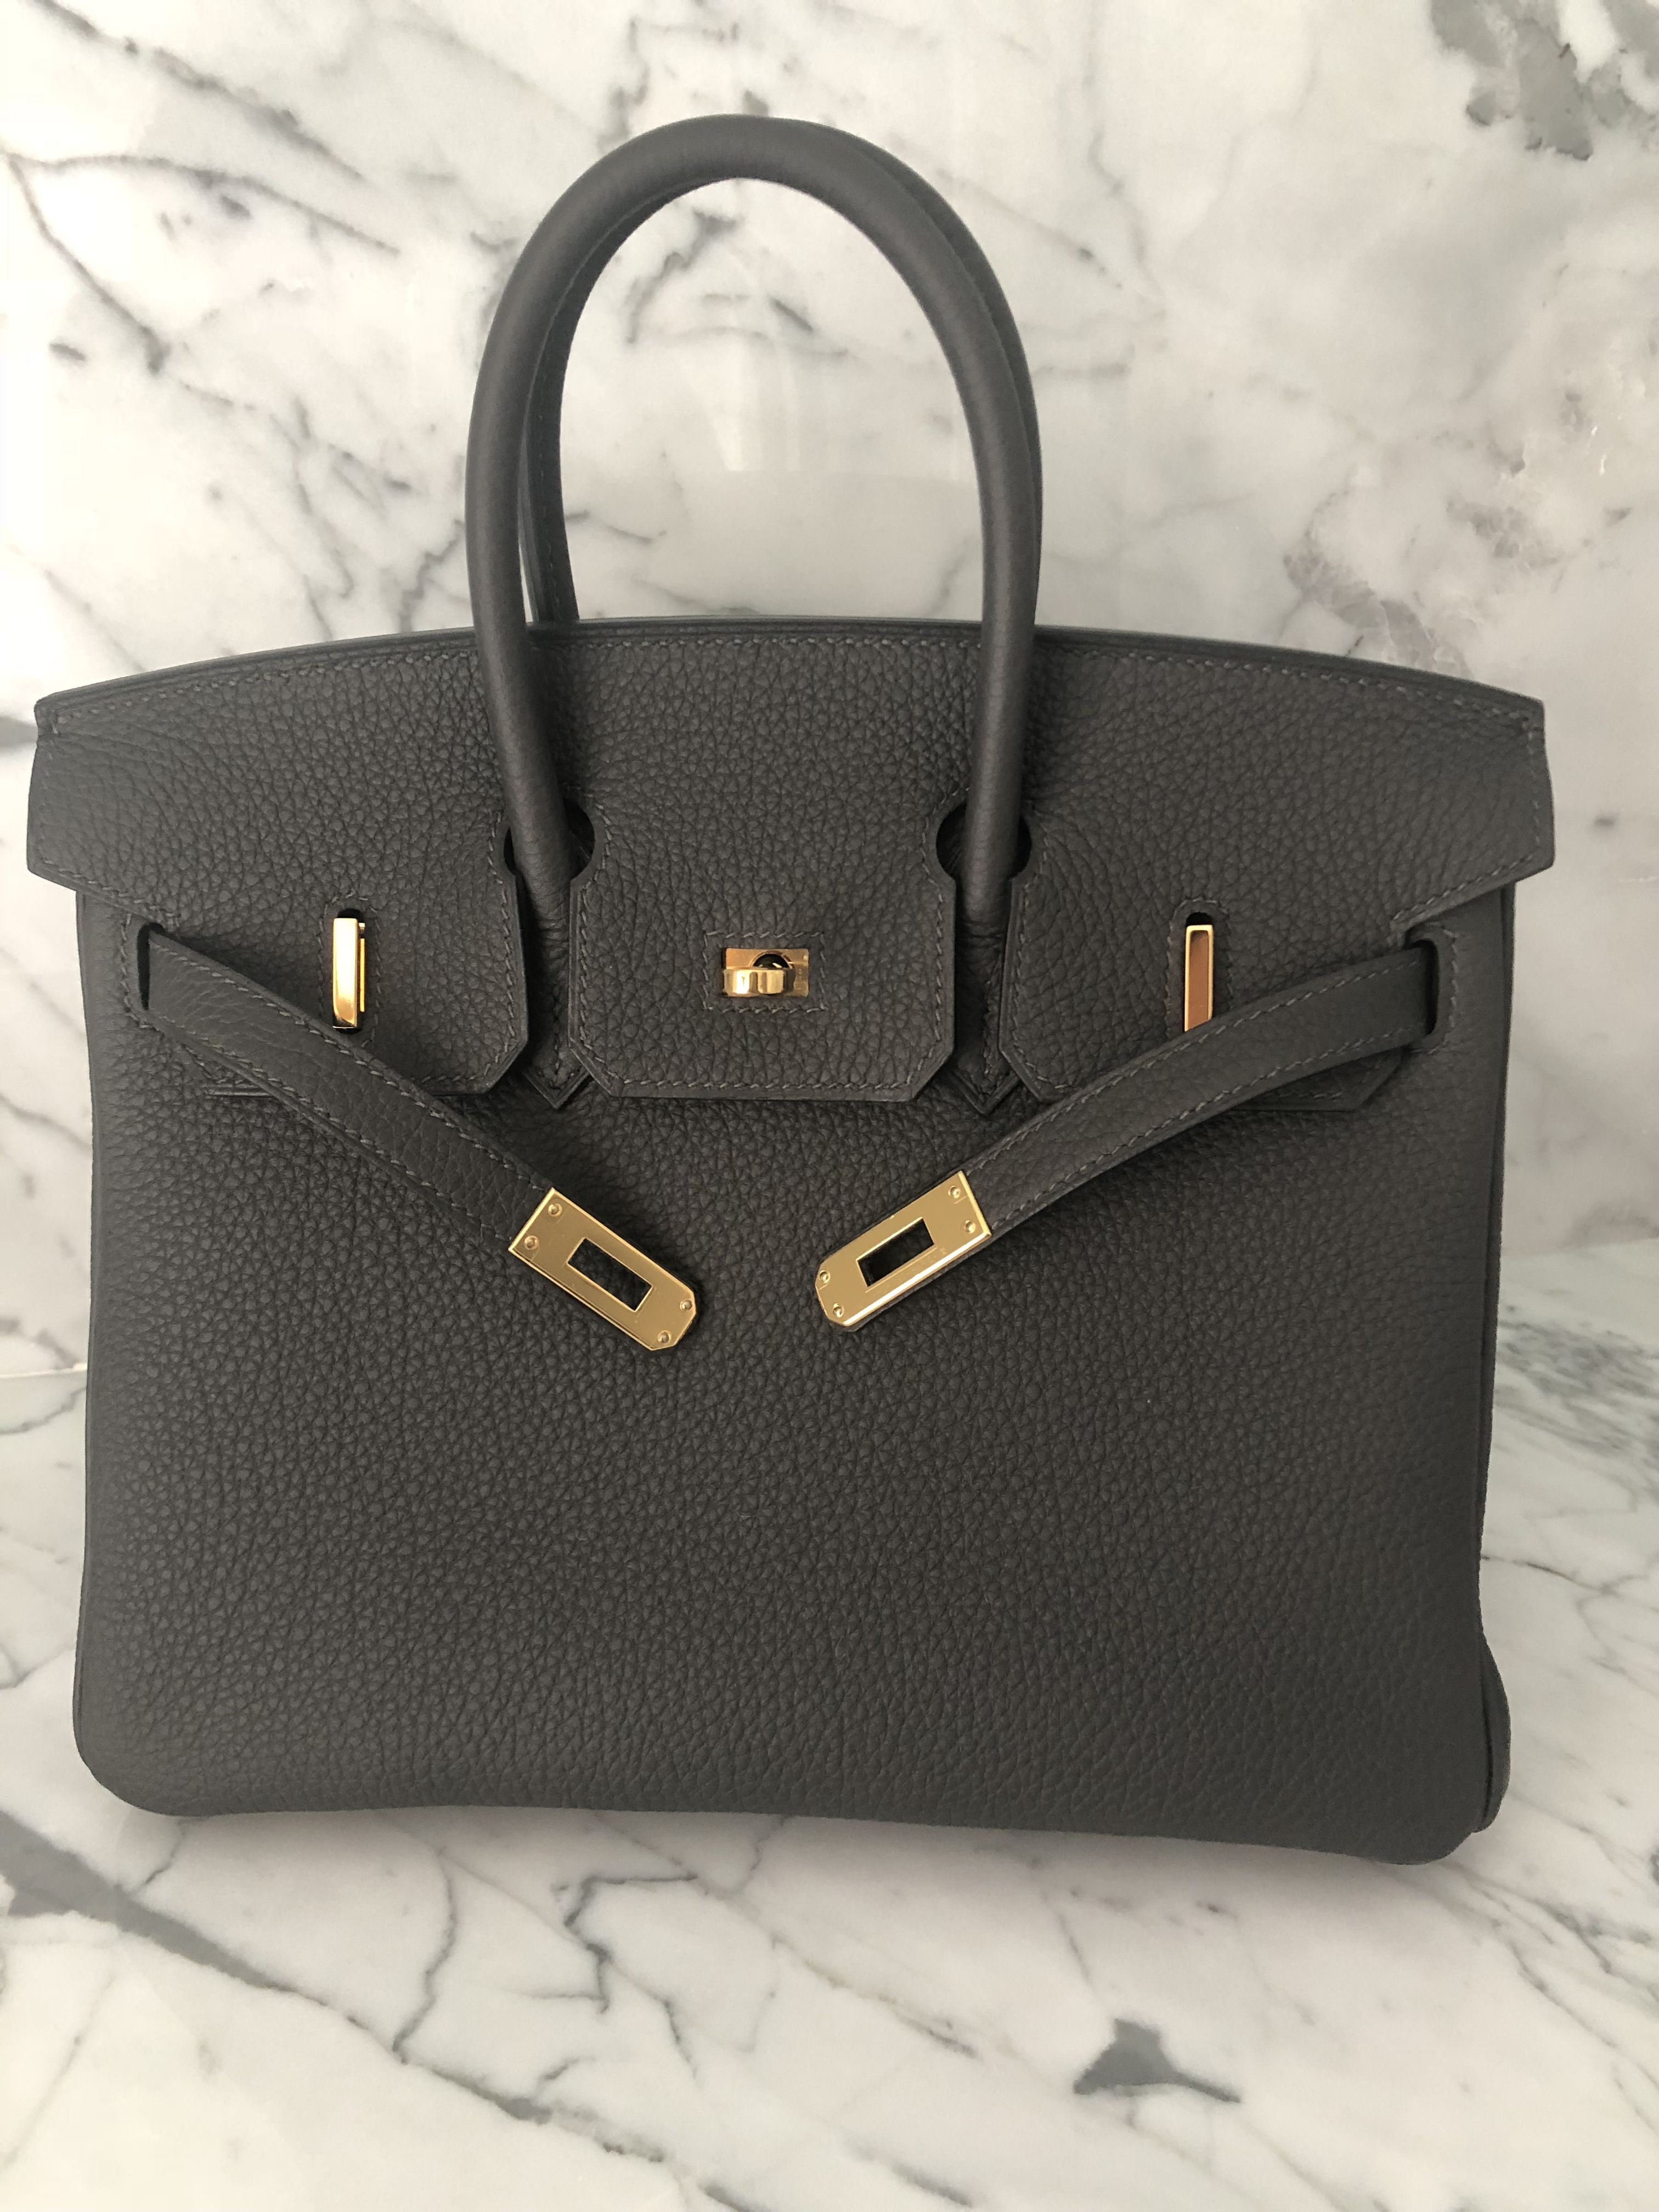 Hermes Birkin 25 in Graphite w  GHW   Orange box in 2019   Pinterest ... af34d623bf